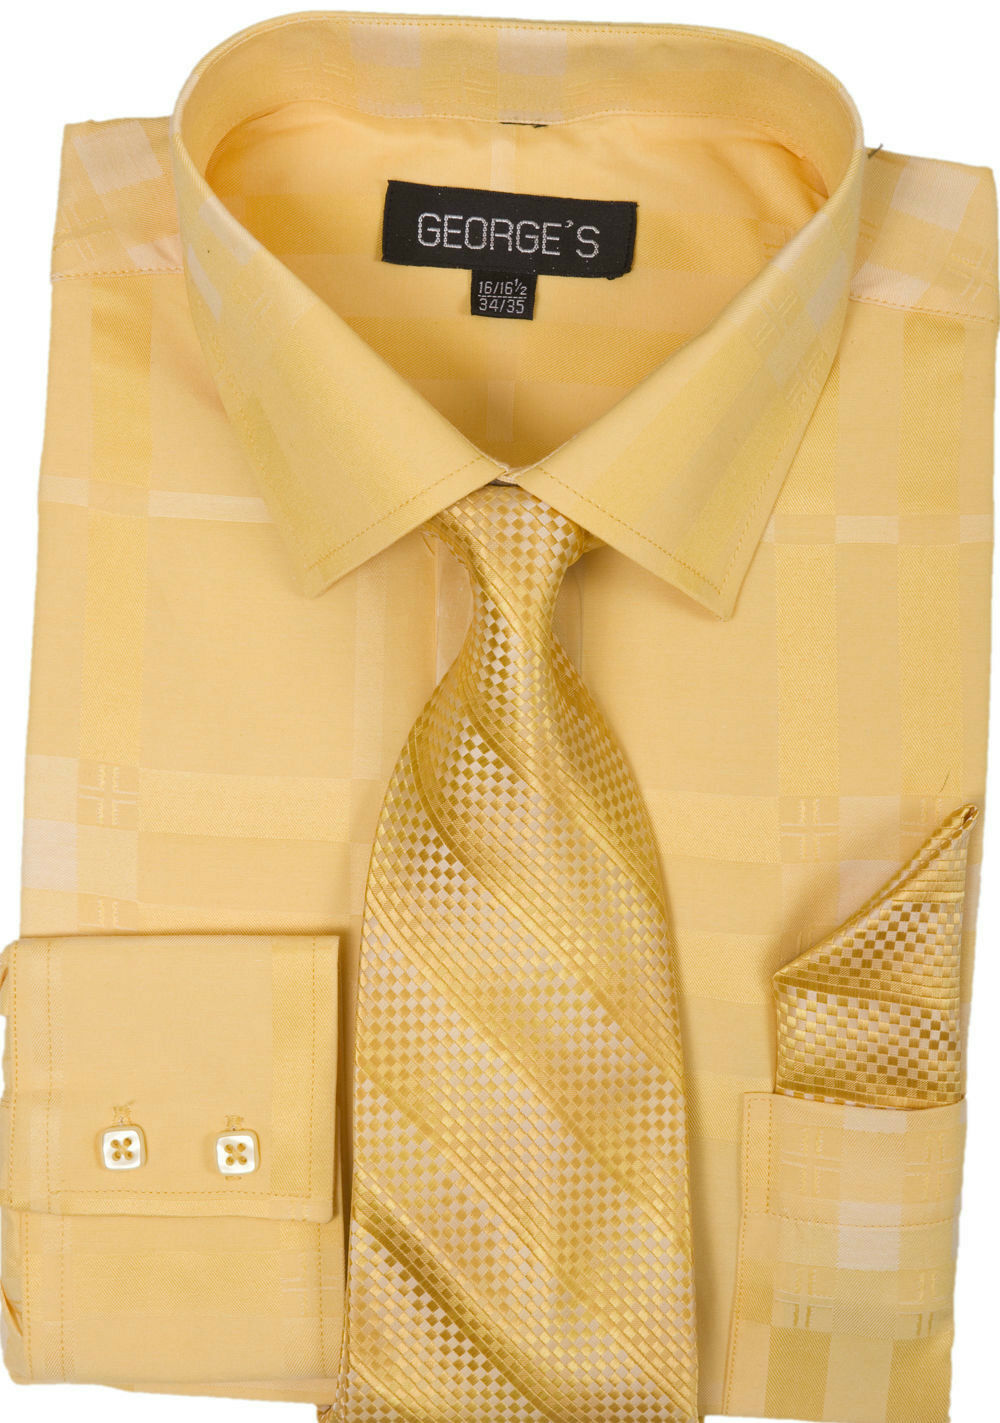 Milano Moda Men Shirt AH623-Gold - Church Suits For Less